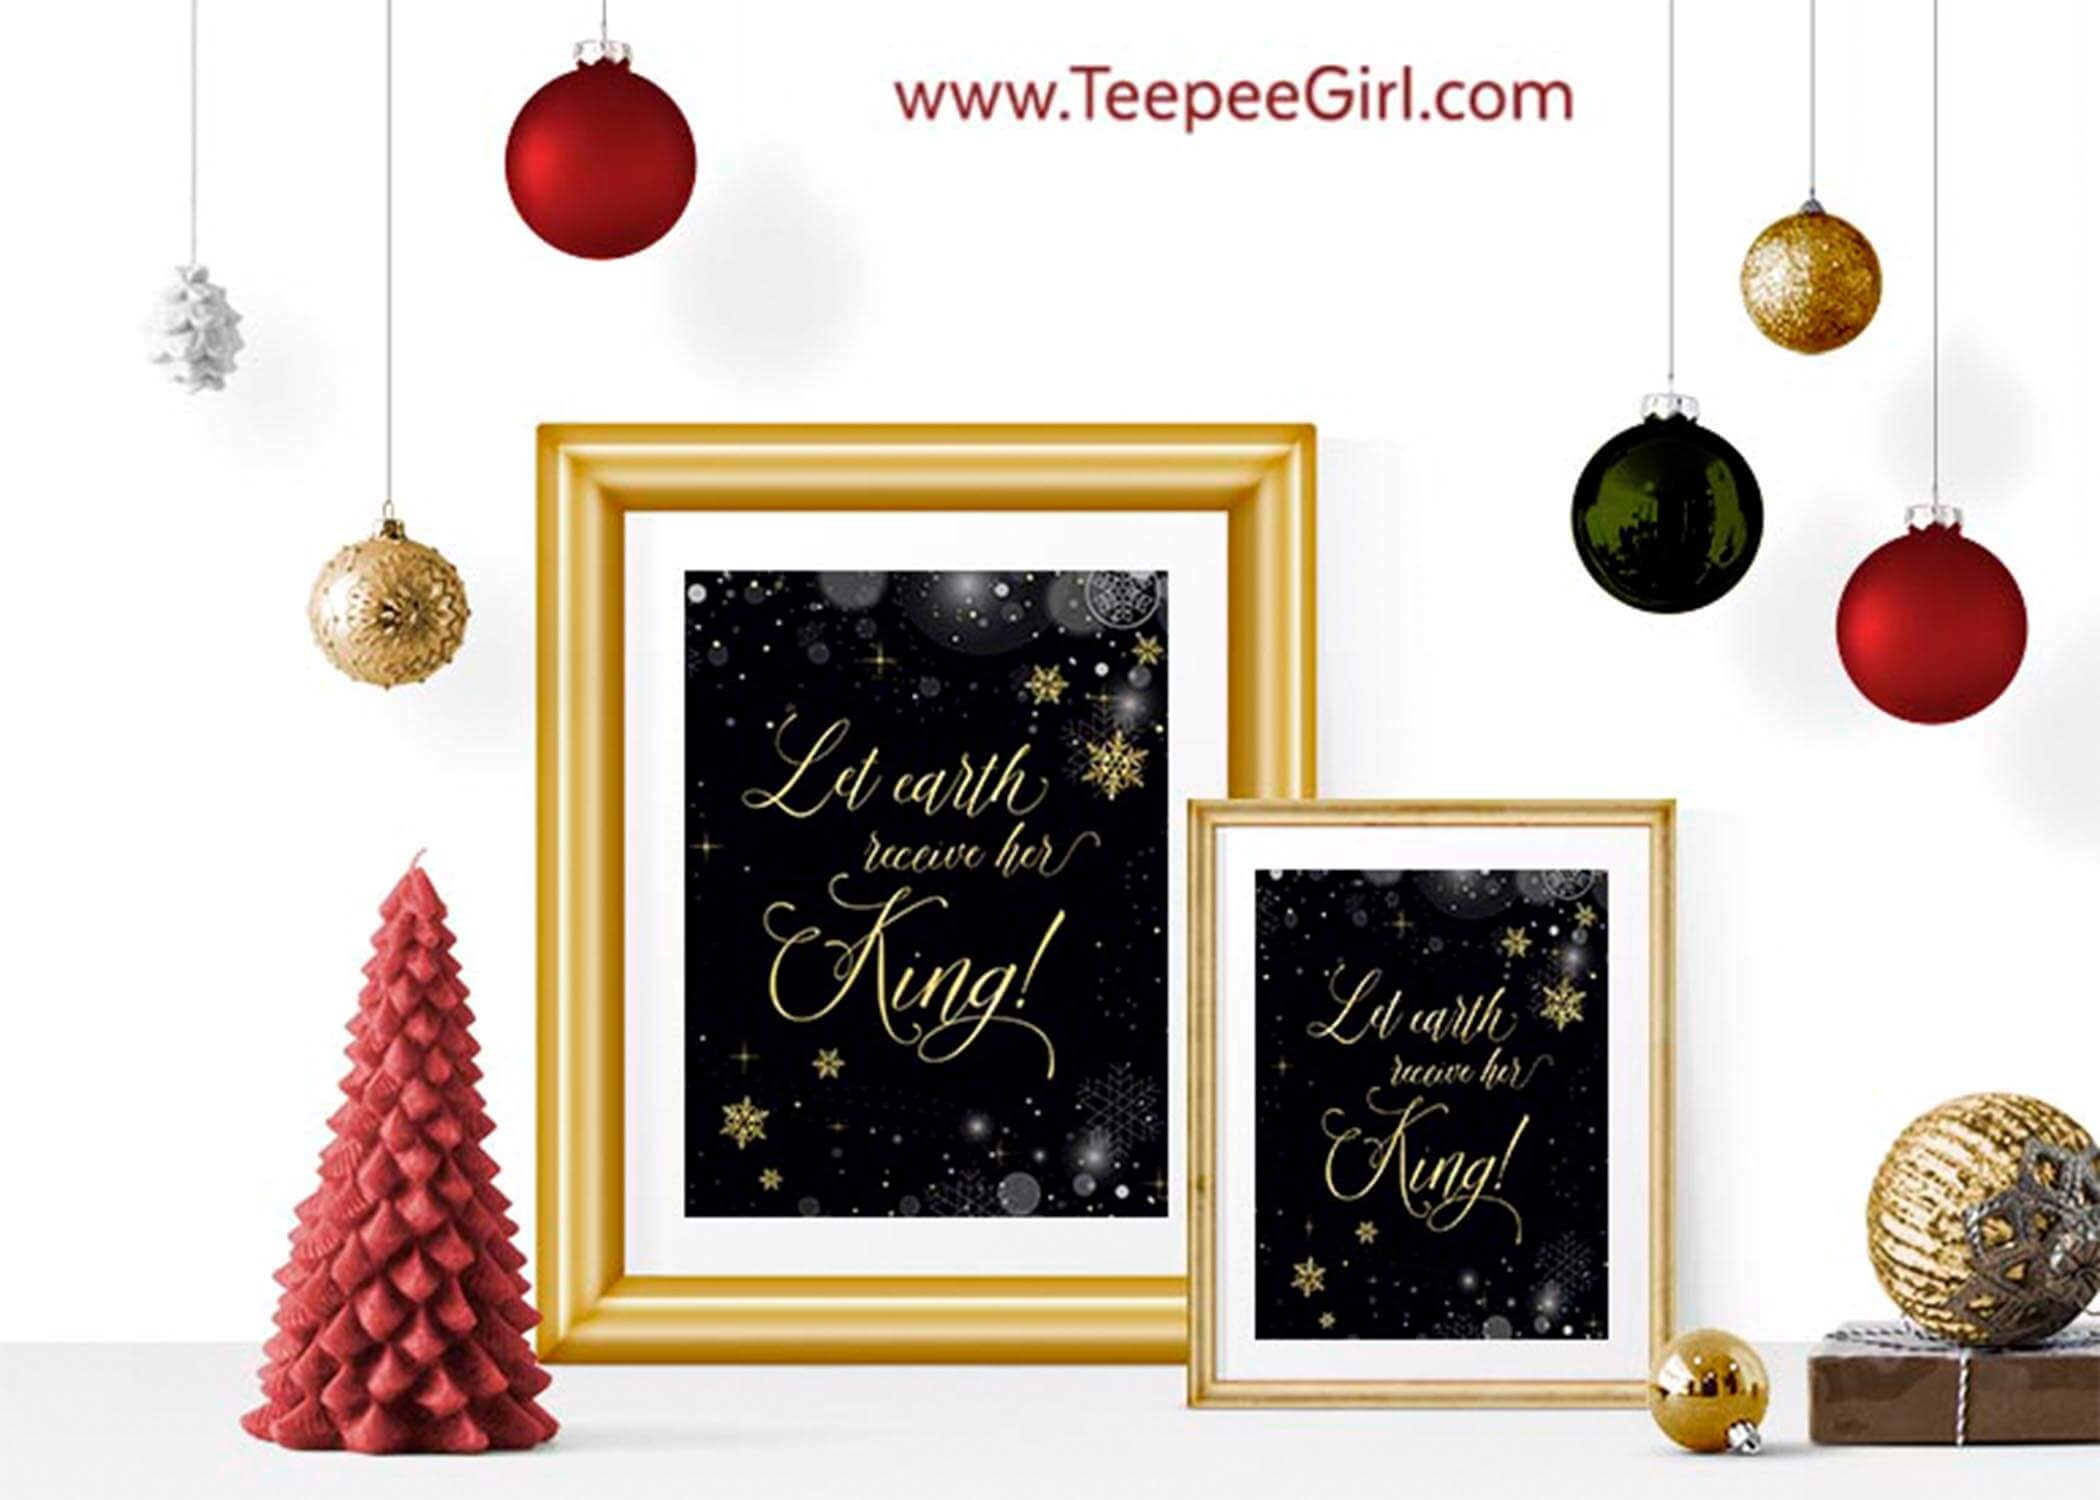 free christmas printable this free christmas printable is the perfect addition to your christmas decor paired with an